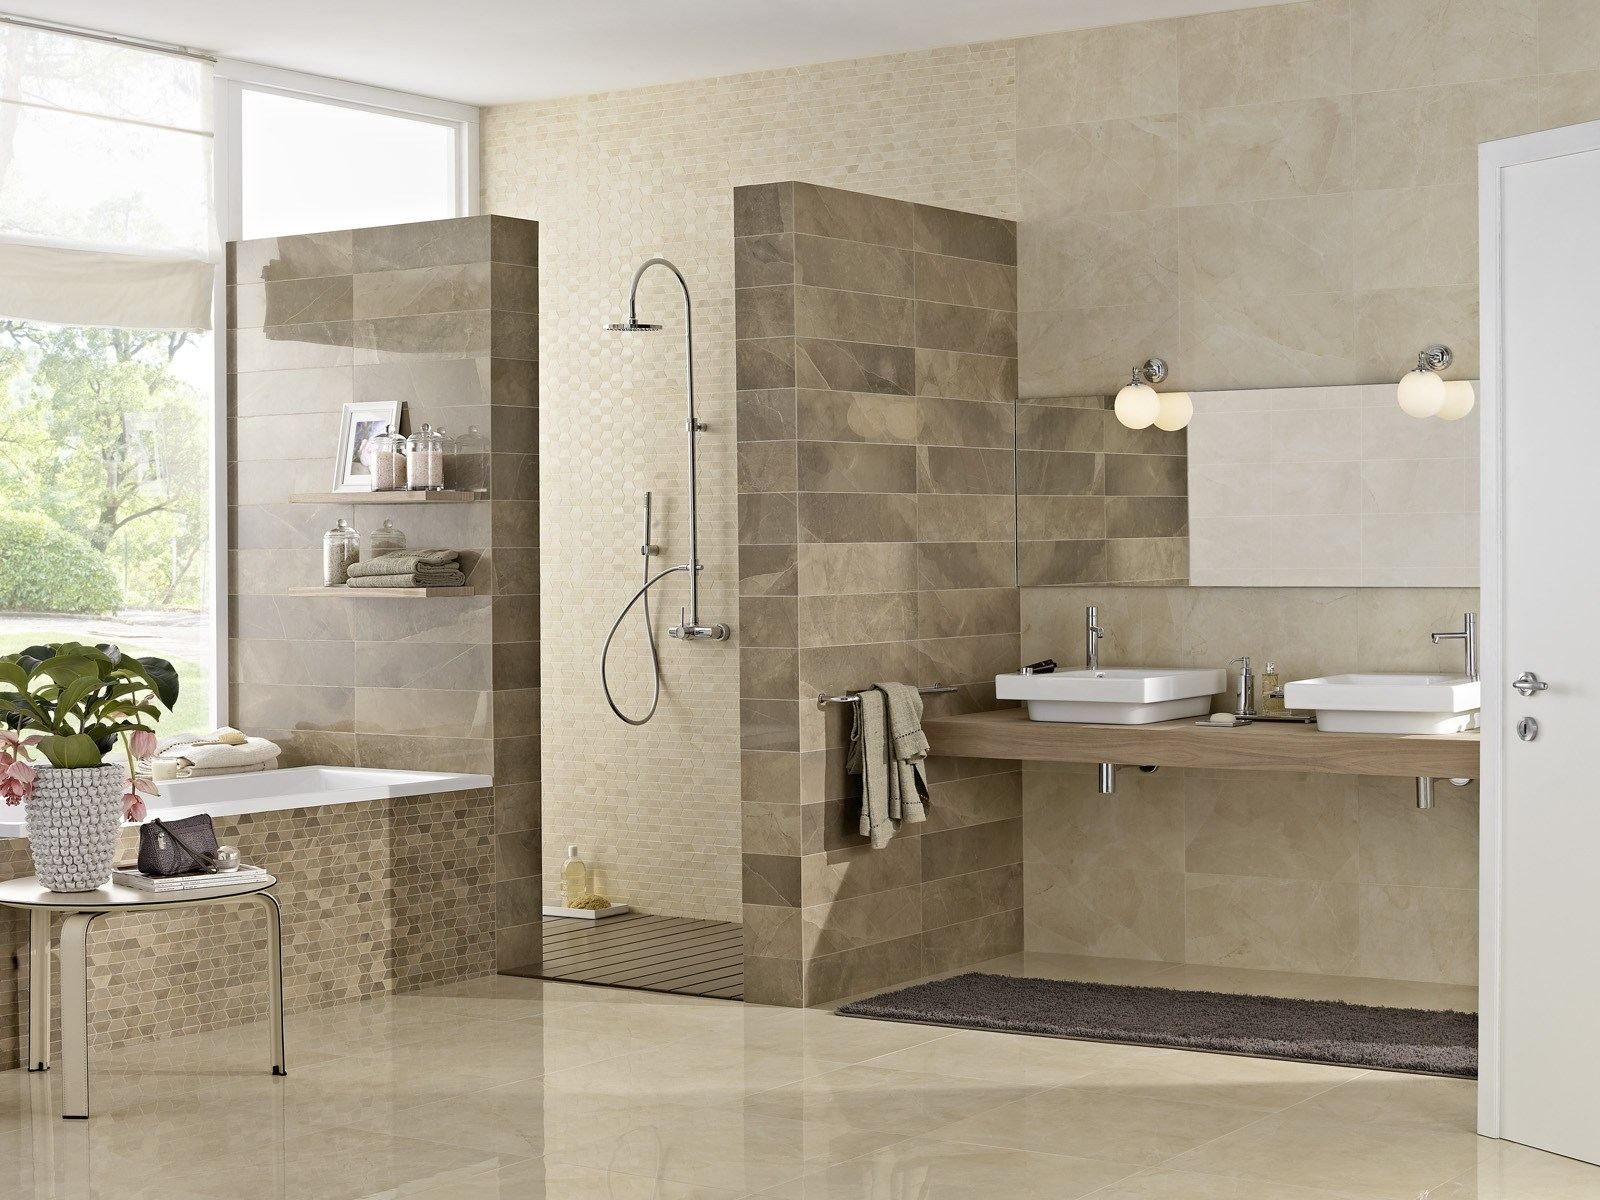 Download The Catalogue And Request Prices Of Evolutionmarble Mosaic By Marazzi Porcelain Ston Best Bathroom Designs Bathroom Interior Design Simple Bathroom